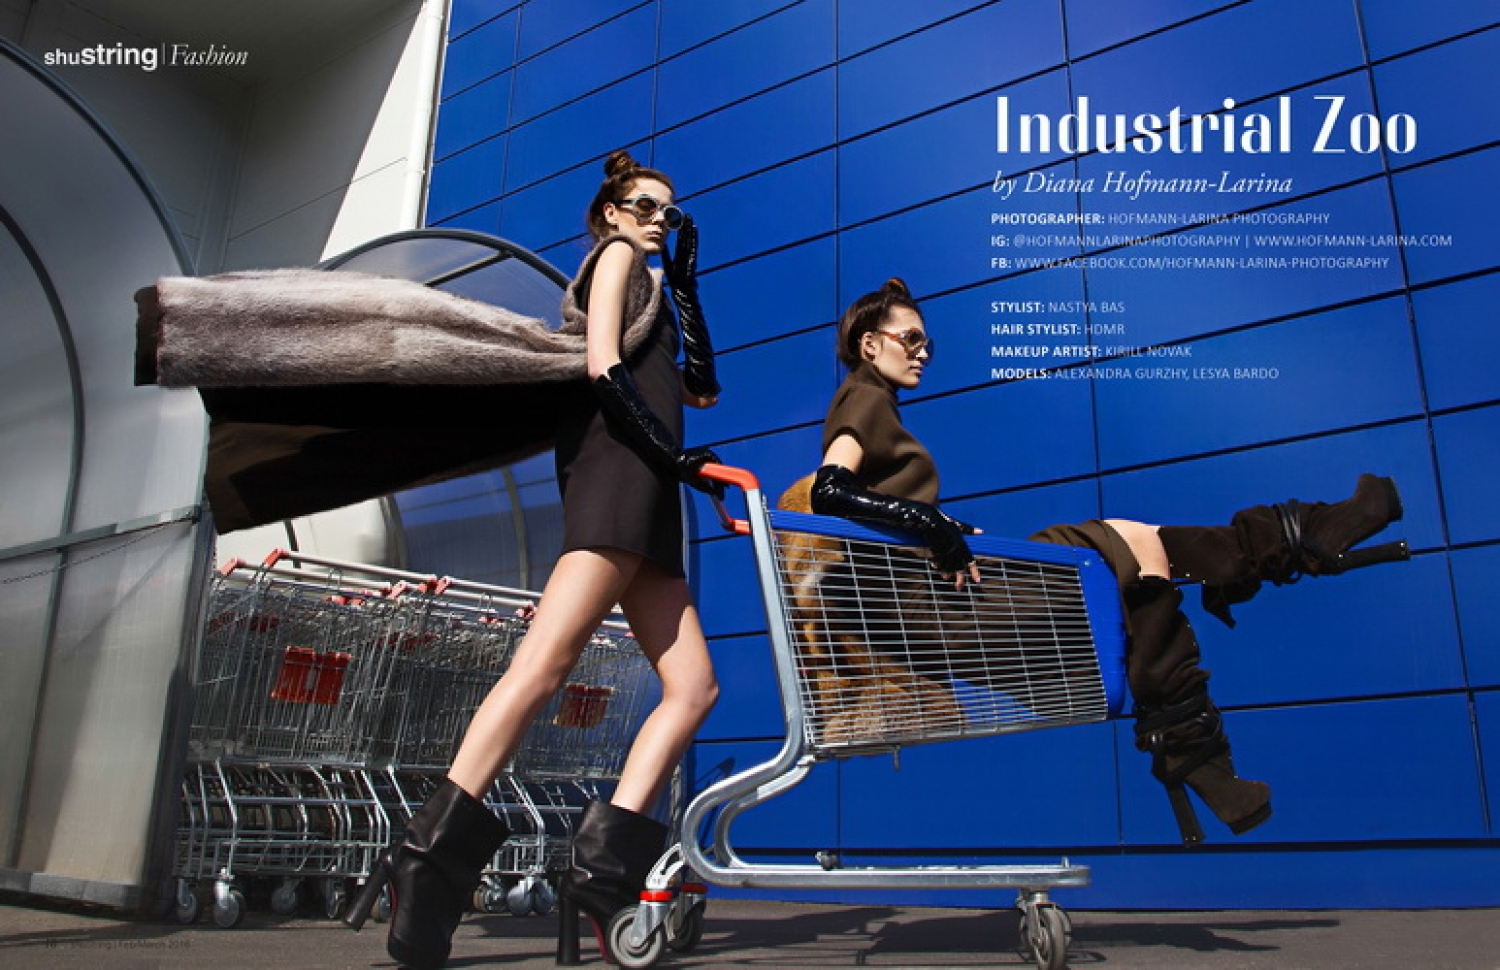 Industrial Zoo for ShuString Magazine